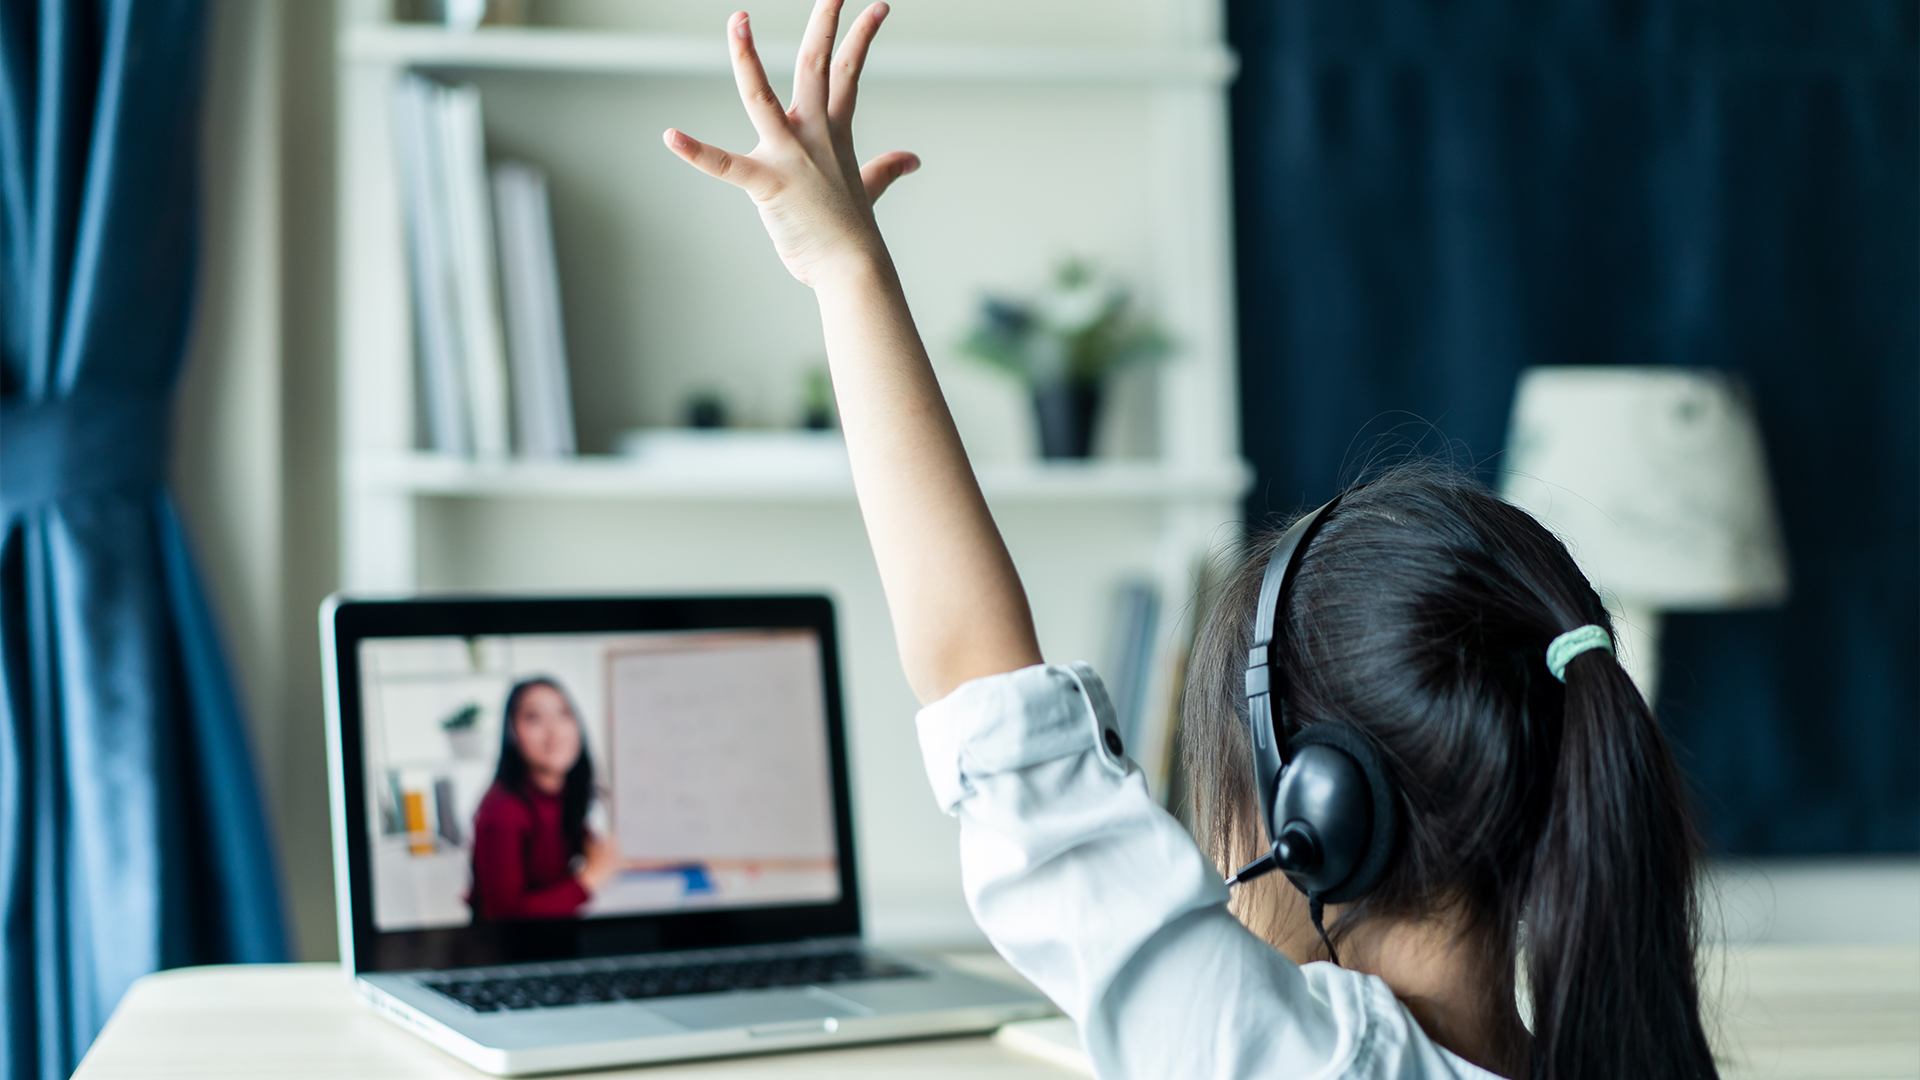 E-learning 5 Things You Might Not Know About Edtech